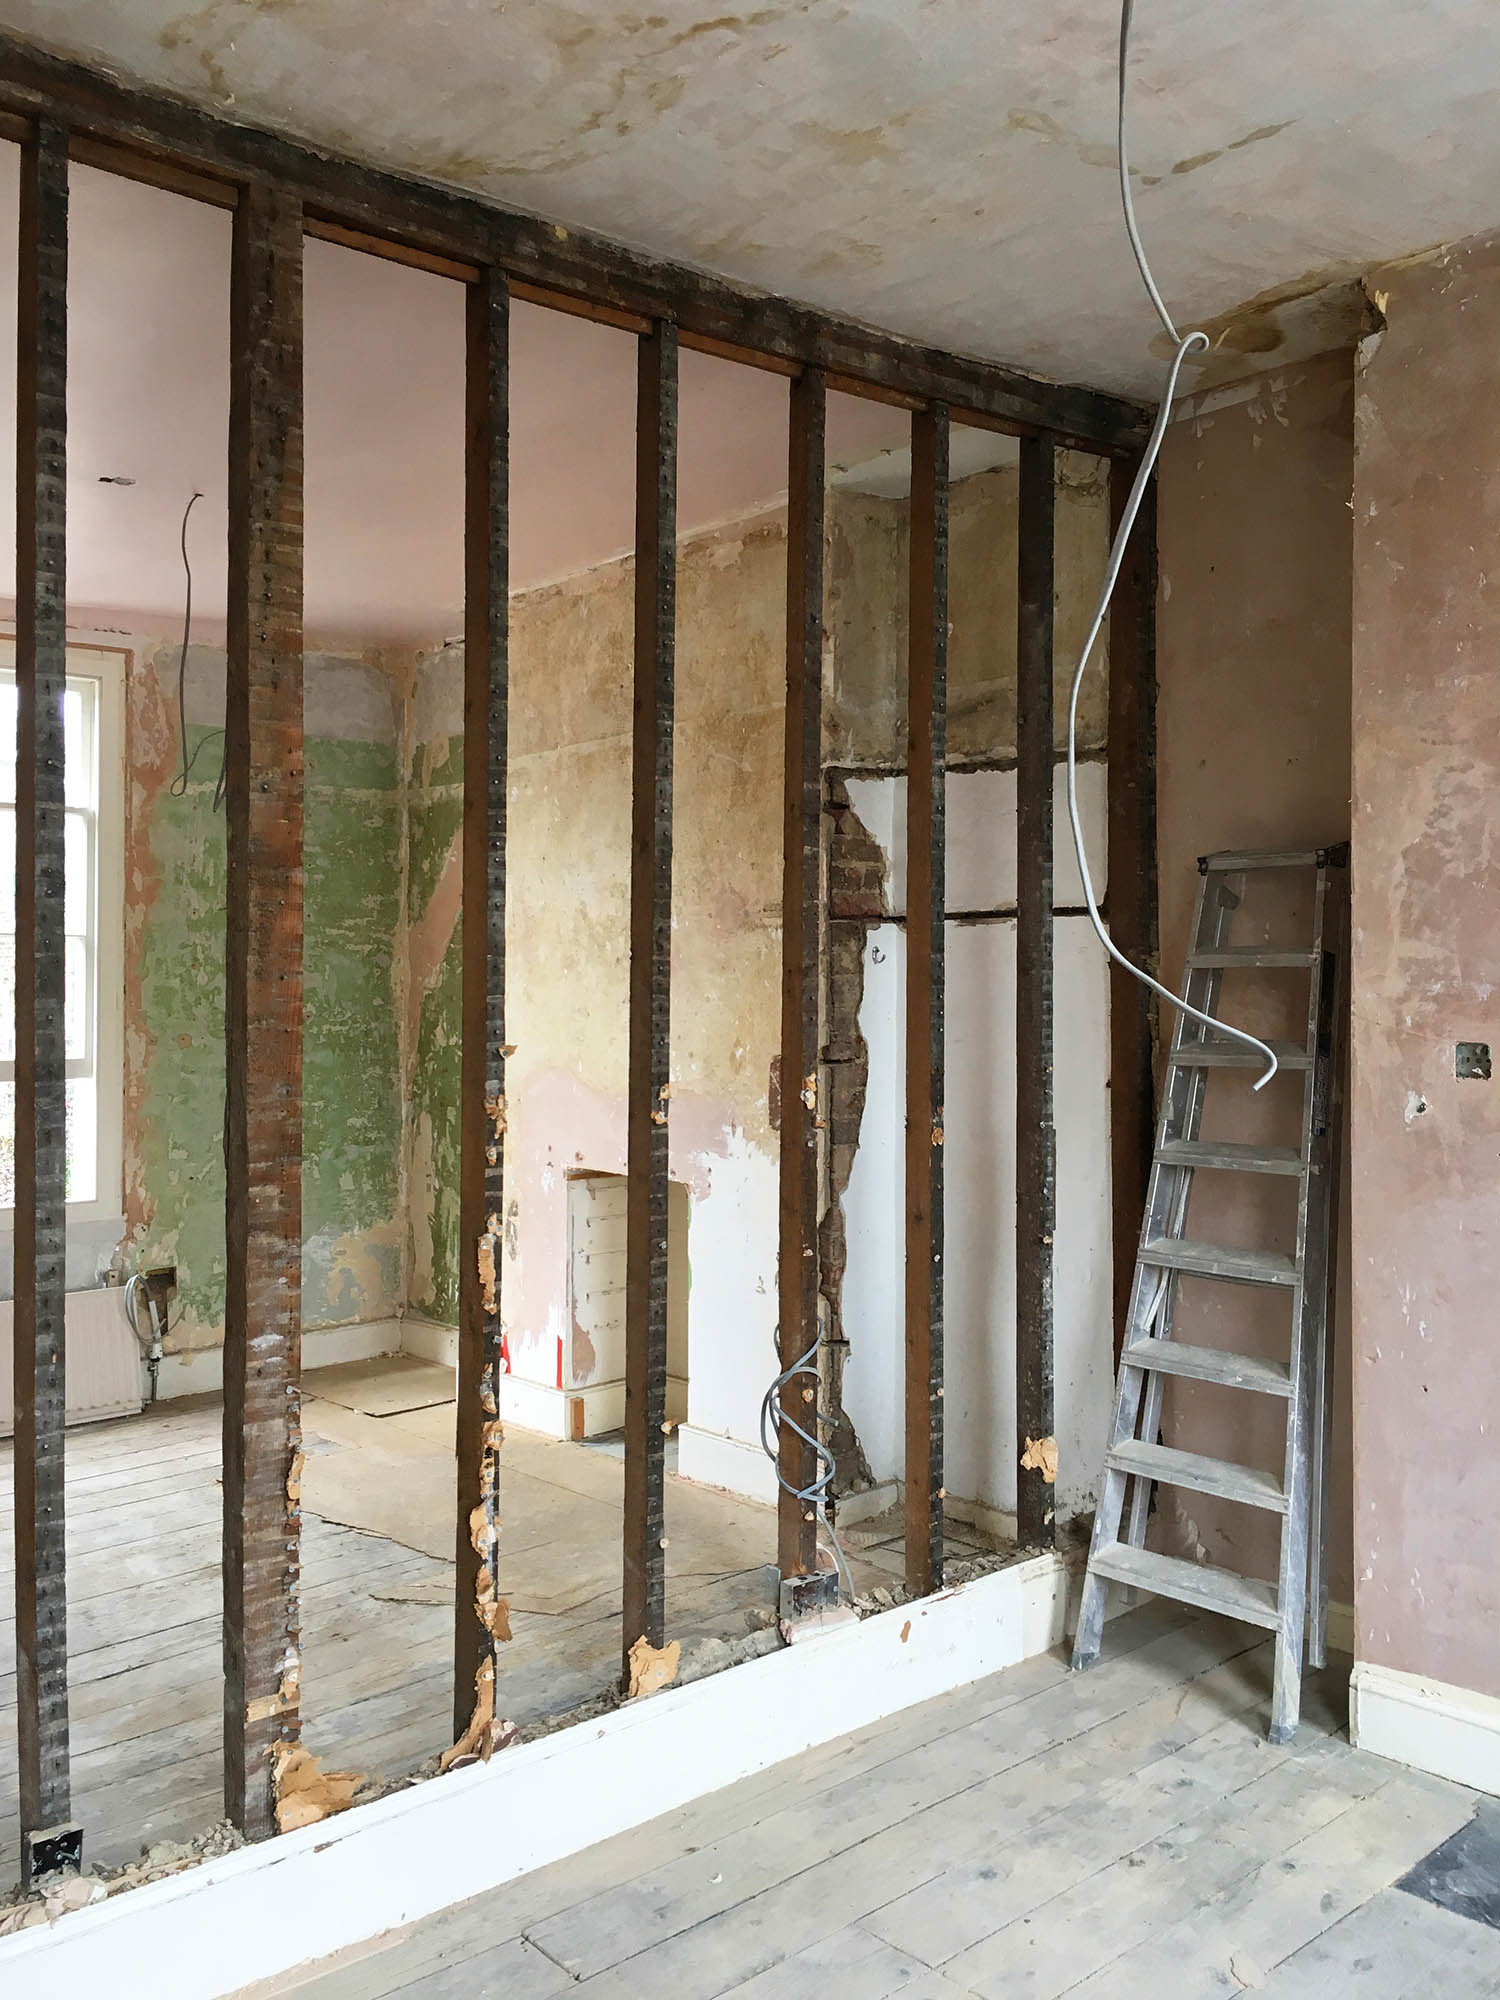 On site at Rydon St  PARTI completed a full renovation of the interior of the house as well as the extension